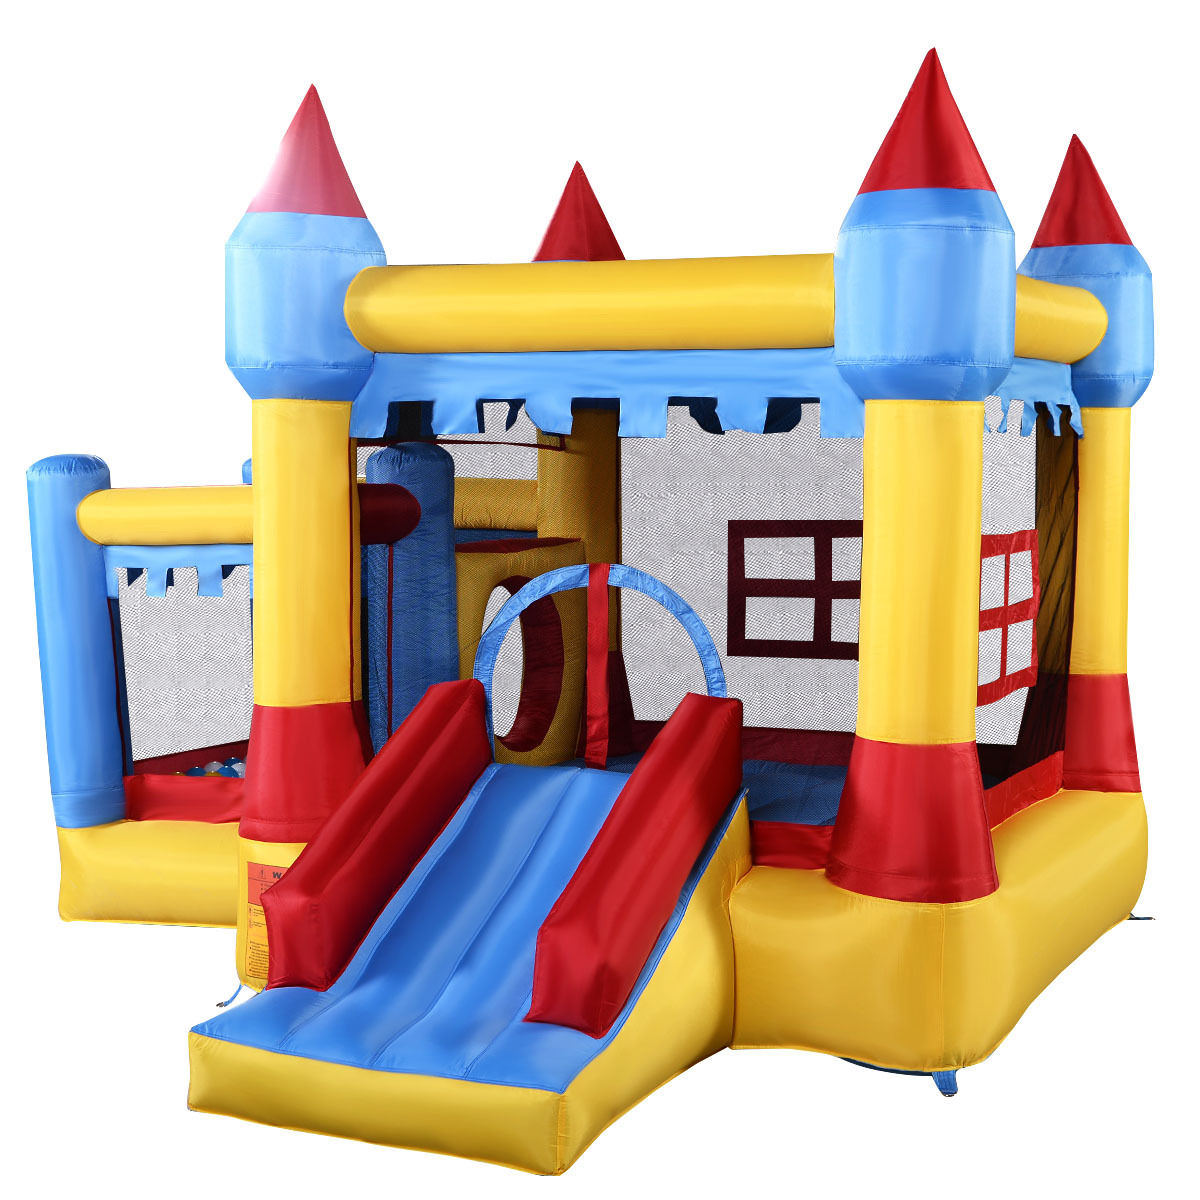 Generic Inflatable Bounce House Castle Commercial Kids Jumper Moonwalk With Ball Without Blower by Costway